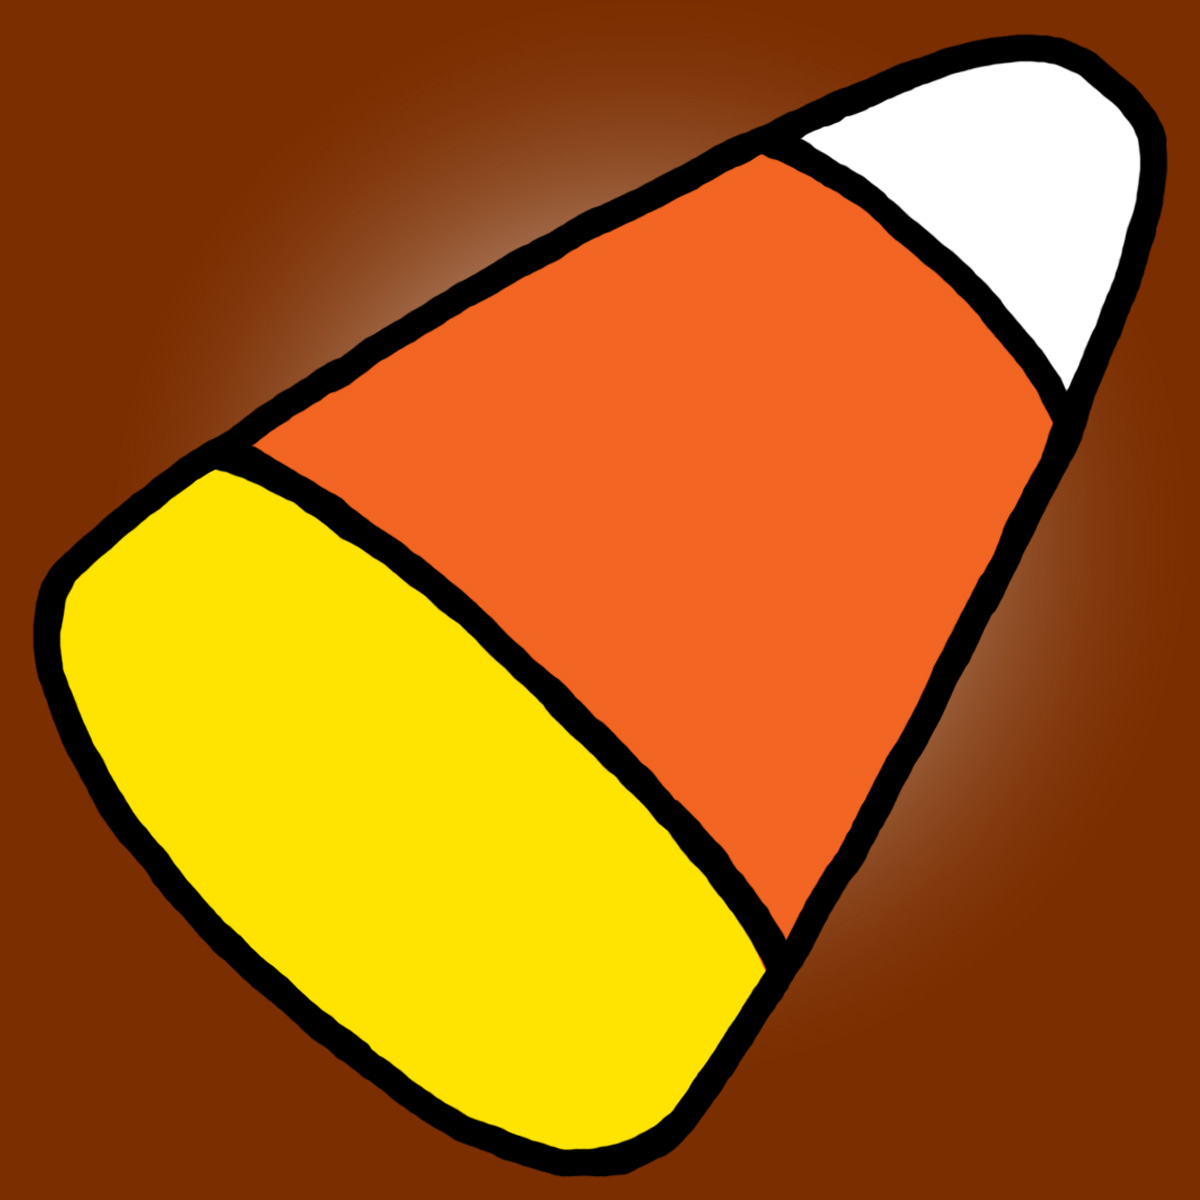 candy corn coloring page coloring pages gallery